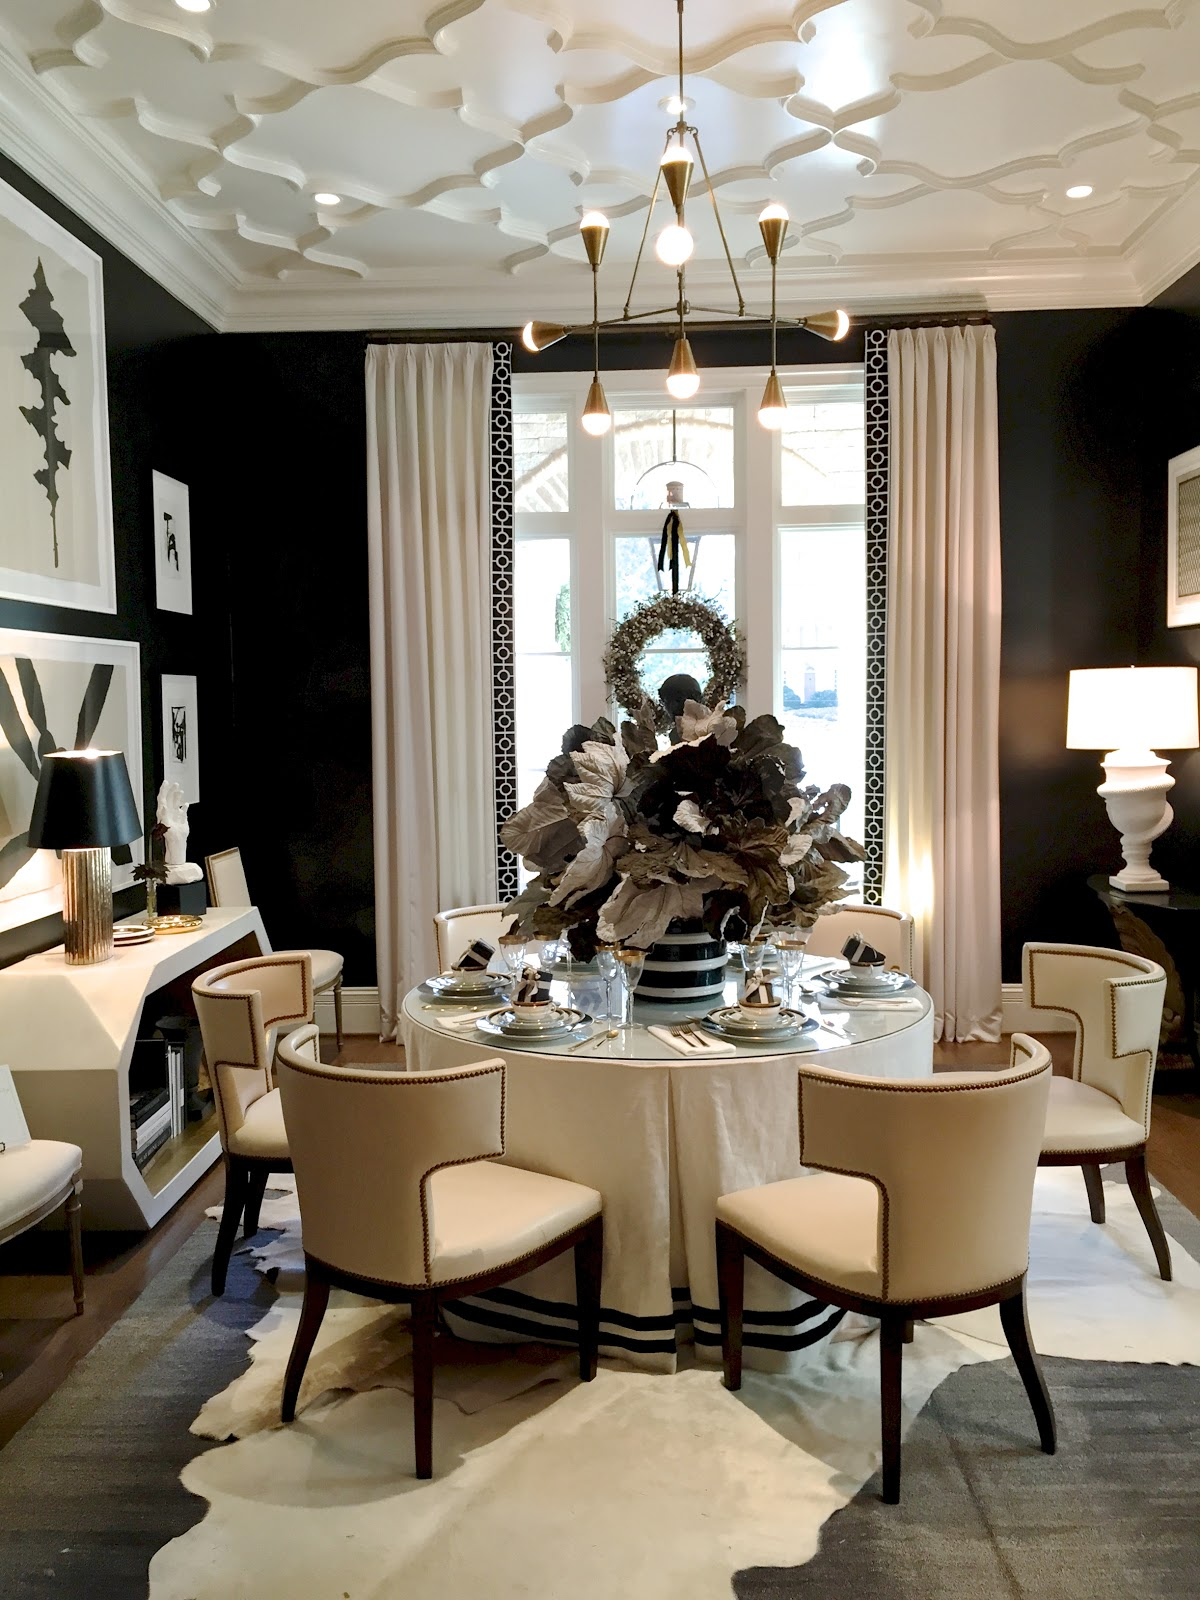 Sophisticated Dining Room Ideas For Your Home Design Dining Room Ideas  Sophisticated Dining Room Ideas For